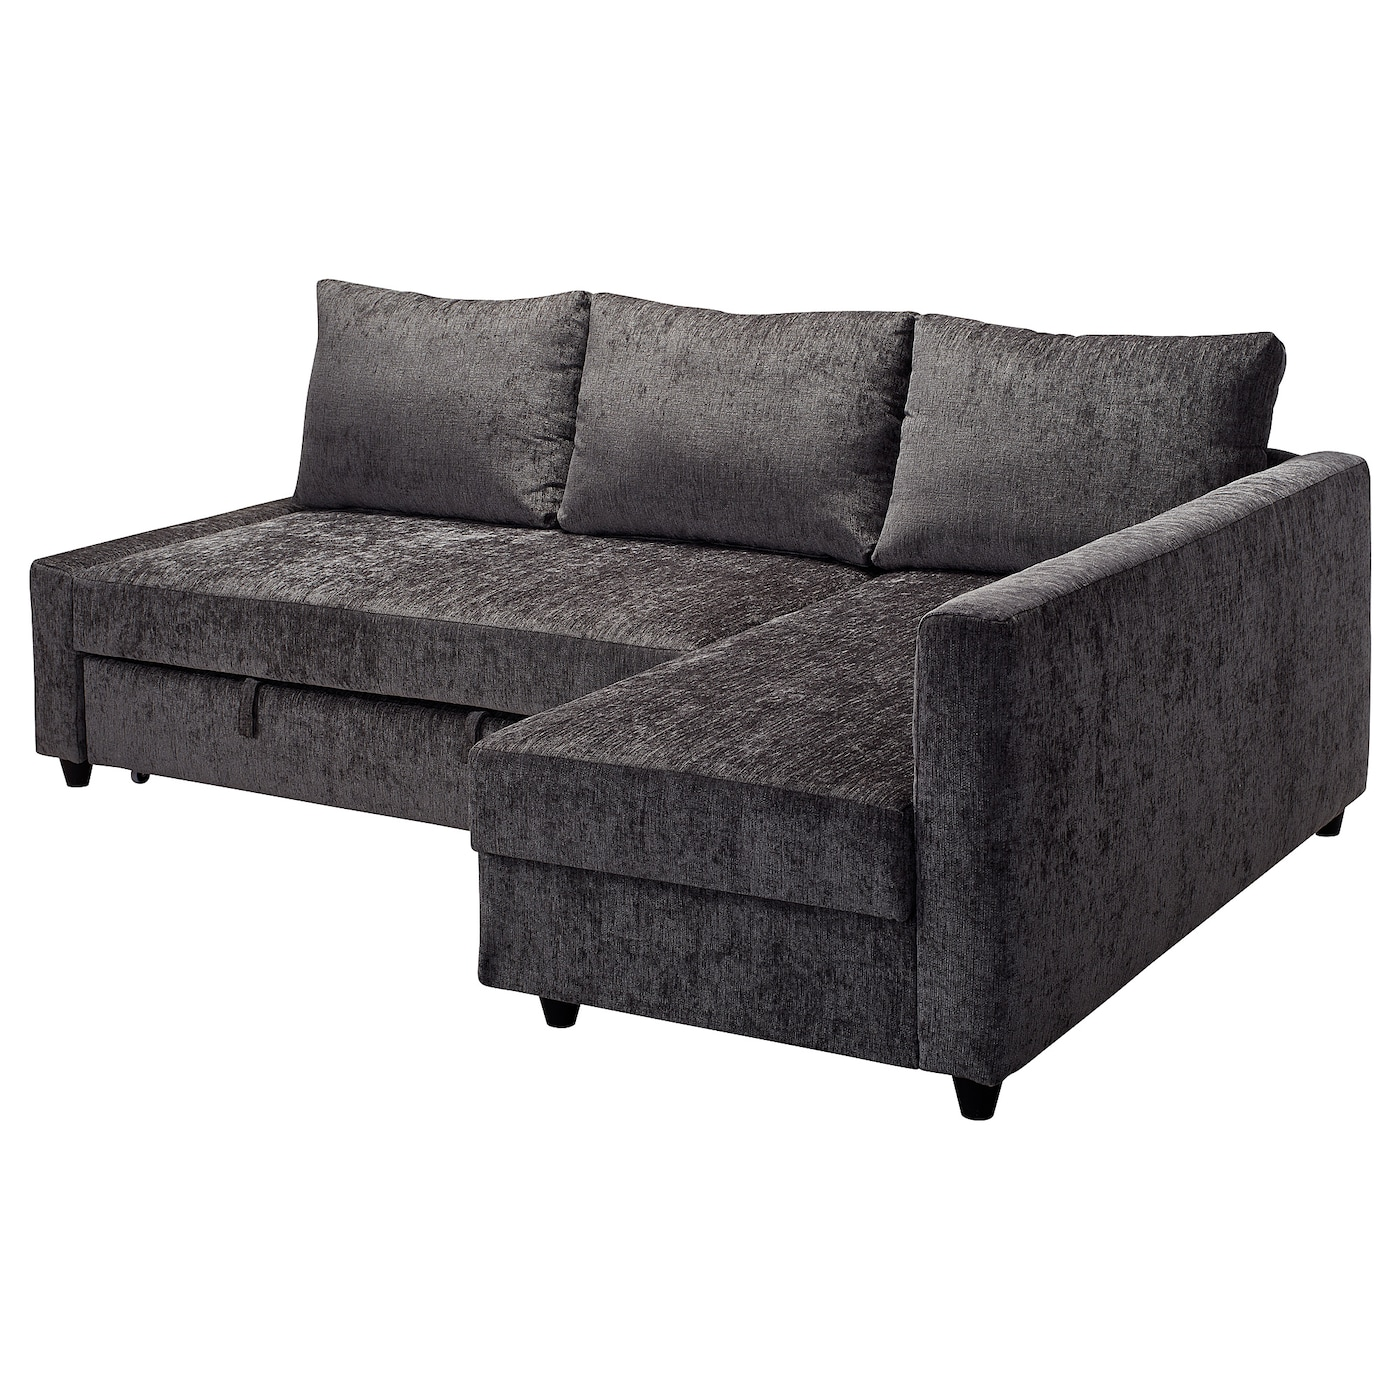 Friheten corner sofa bed with storage dark grey ikea for Ikea corner sofa